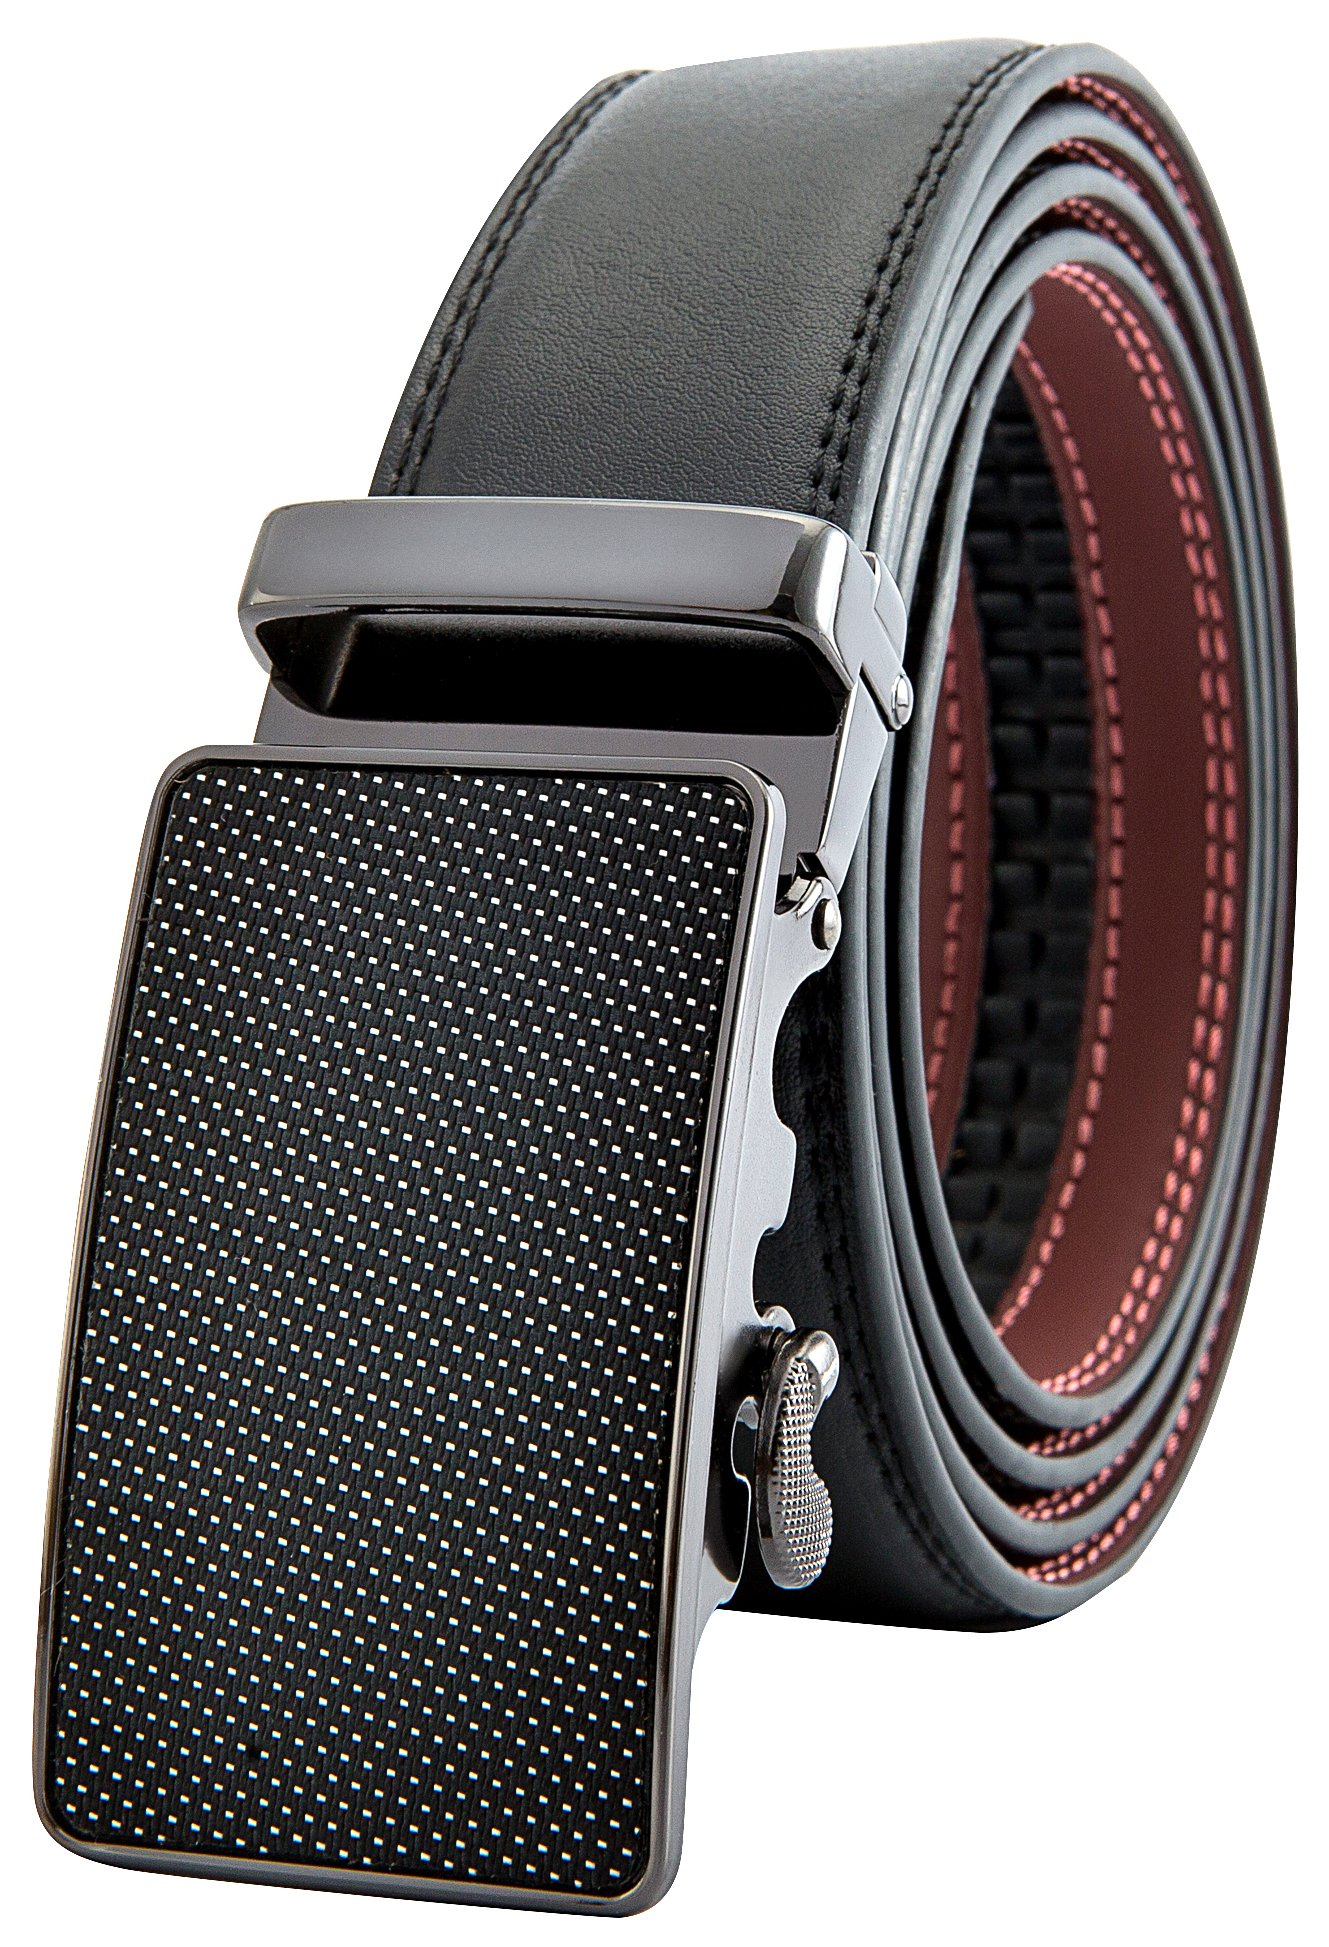 Men's Black Ratchet Belt - Dotted Style - by J. Dapper